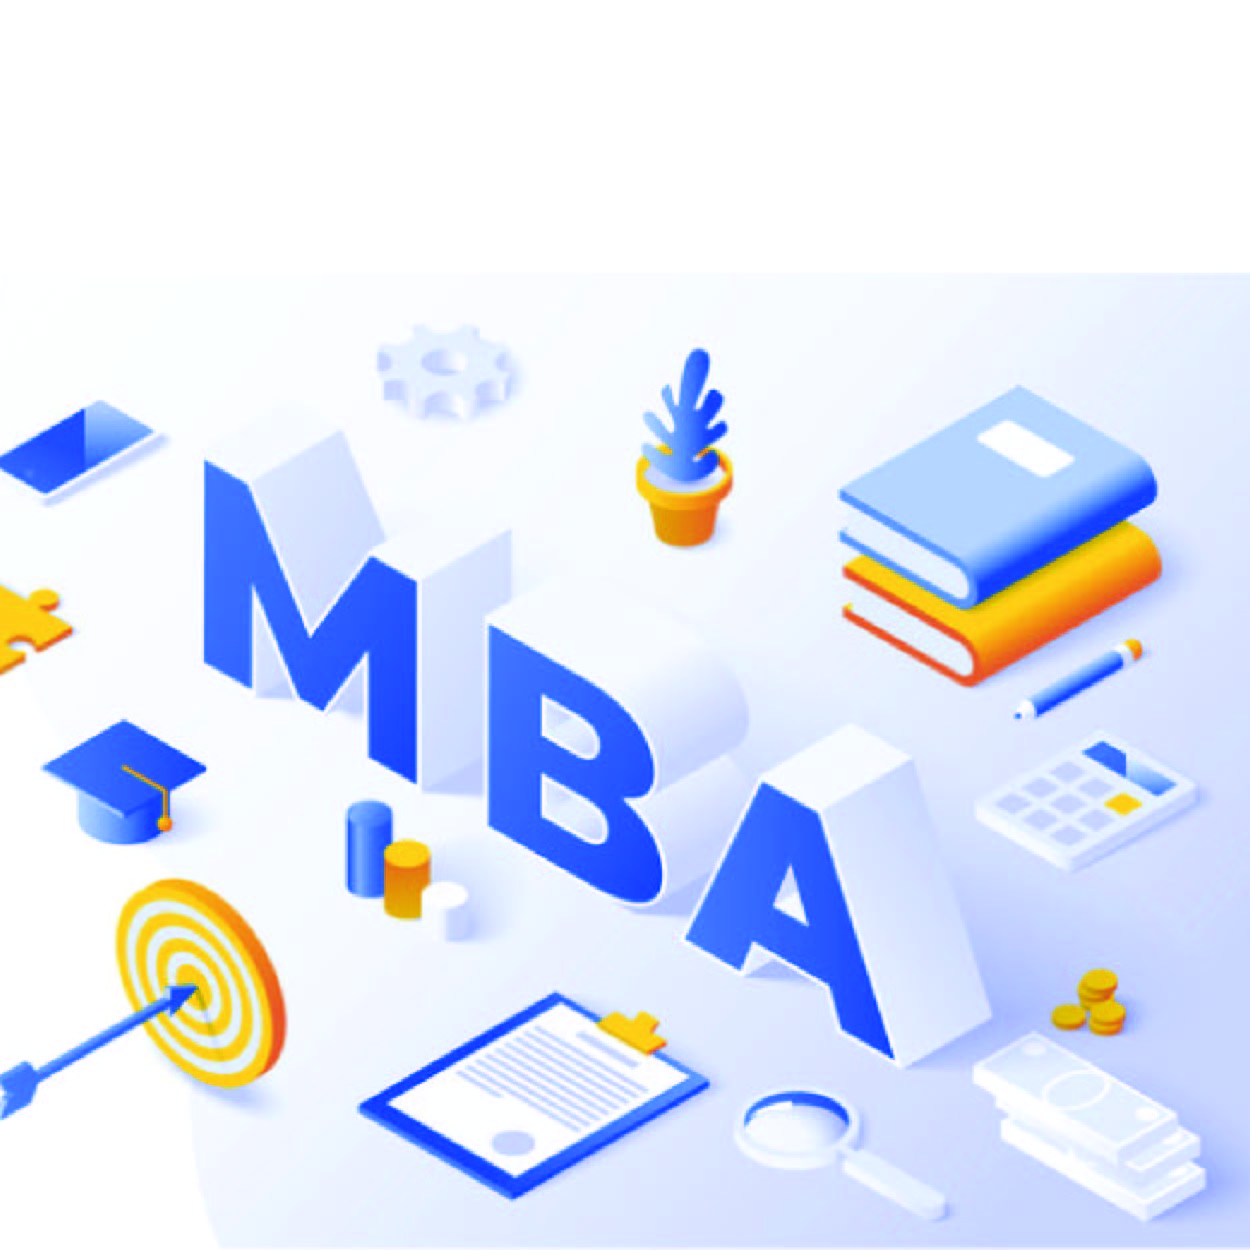 MBA Courses in India 2020: Admissions, Structure, Eligibility, Fees & Careers